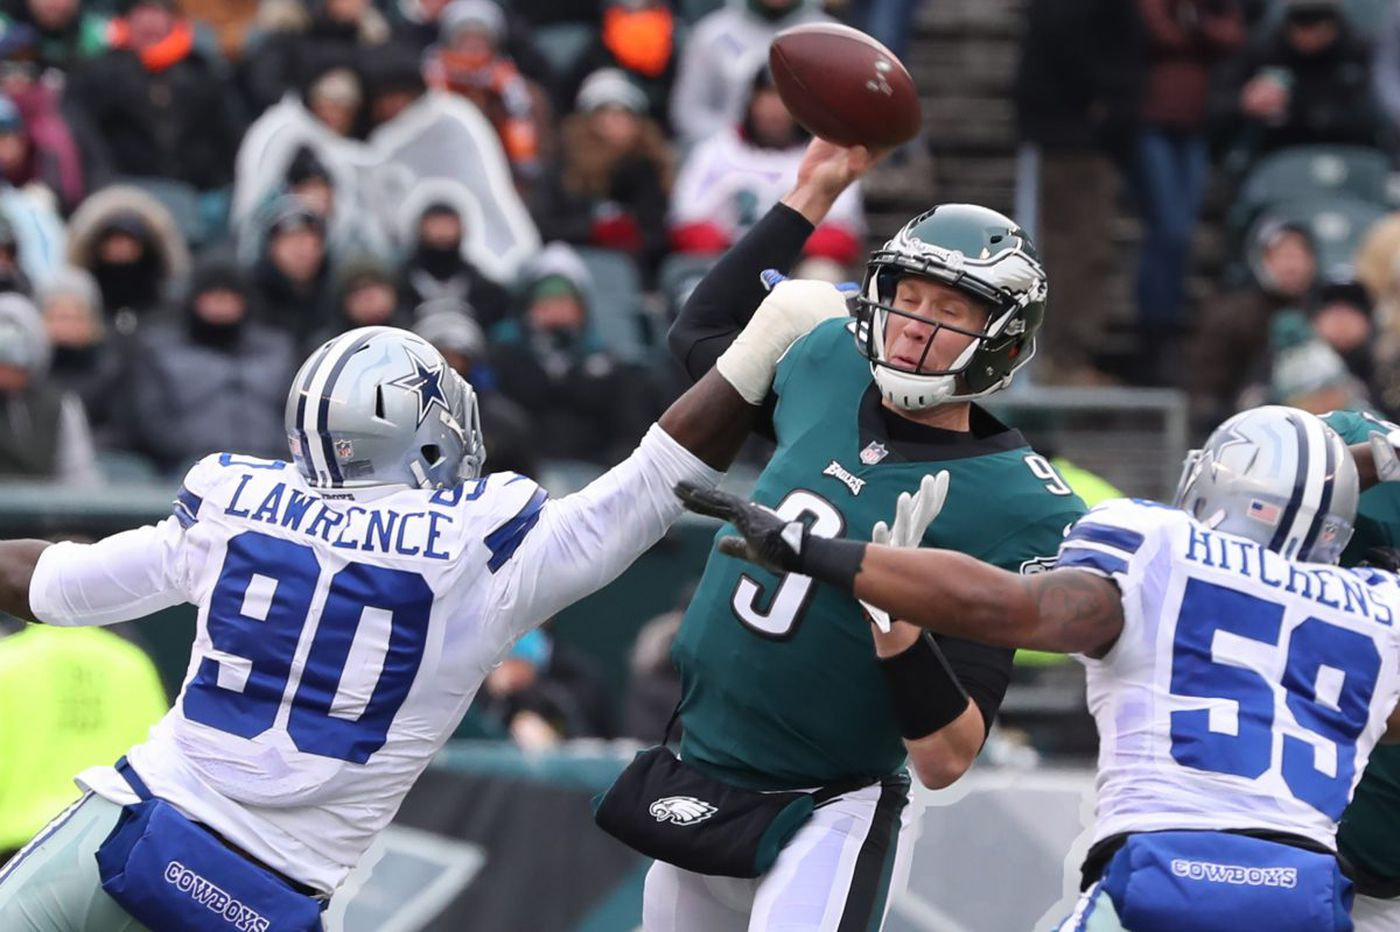 Cowboys 6, Eagles 0: Nick Foles struggles again as season turns to NFL playoffs